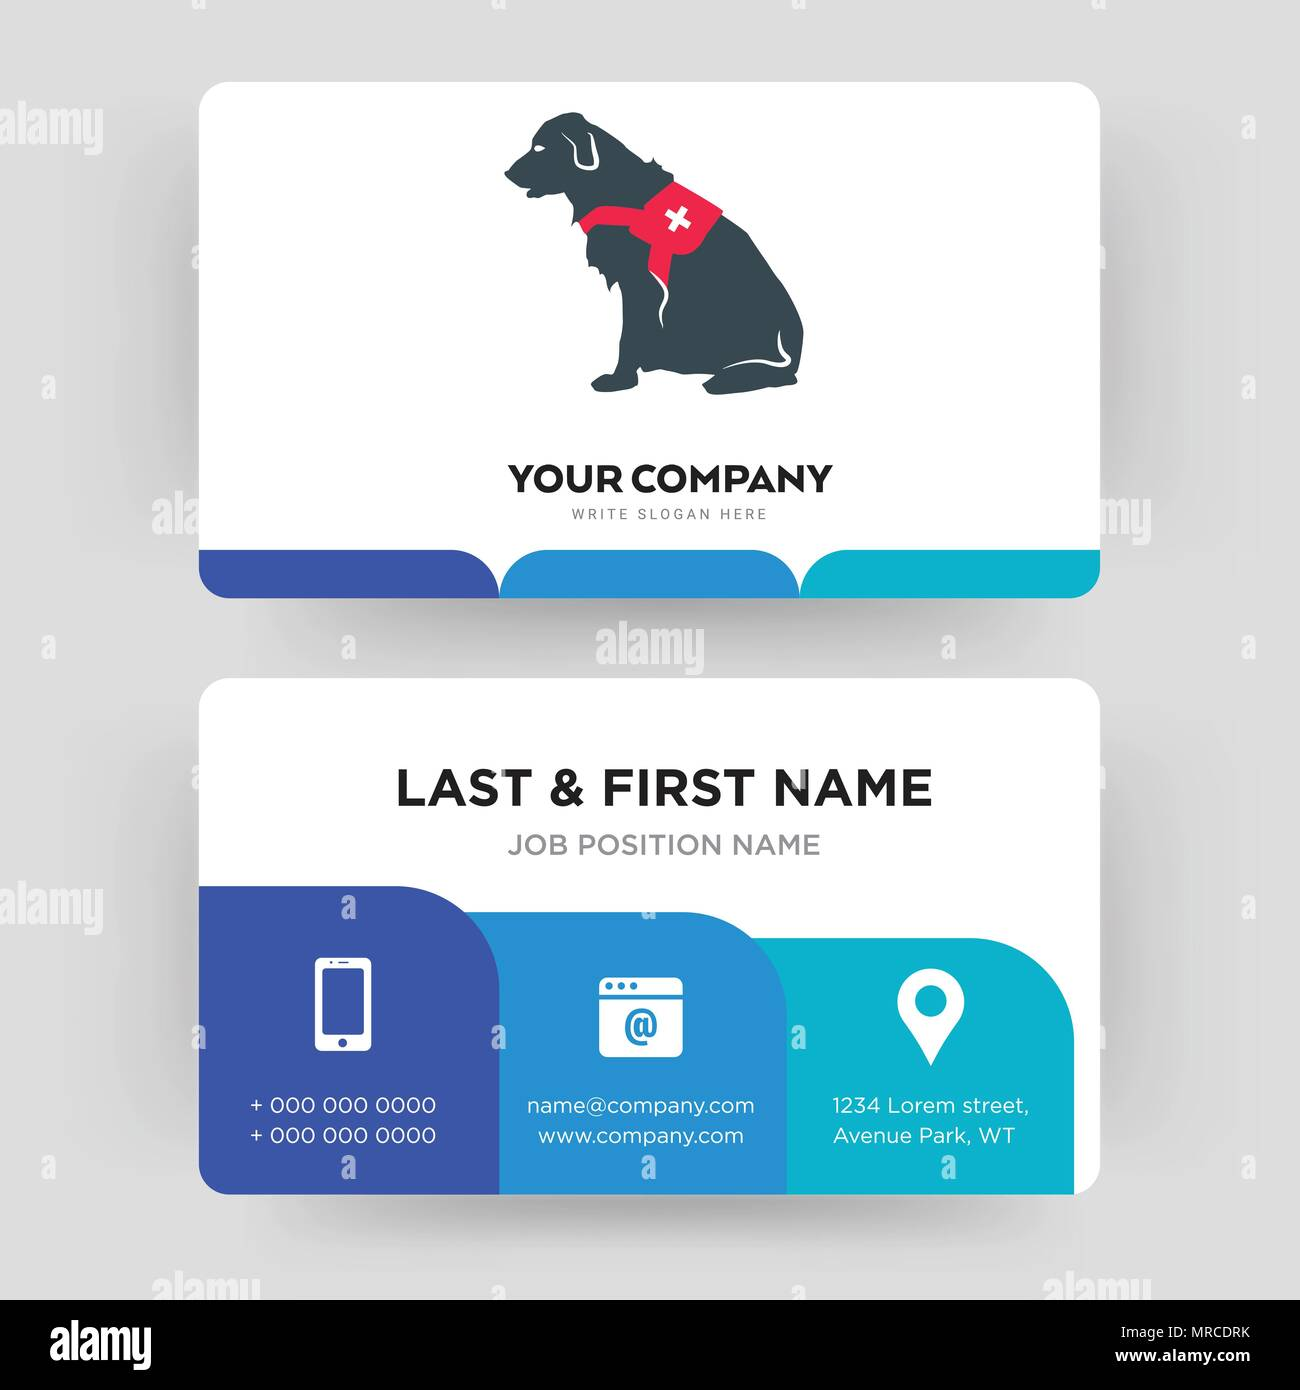 service dog, business card design template, Visiting for your company, Modern Creative and Clean identity Card Vector Stock Vector